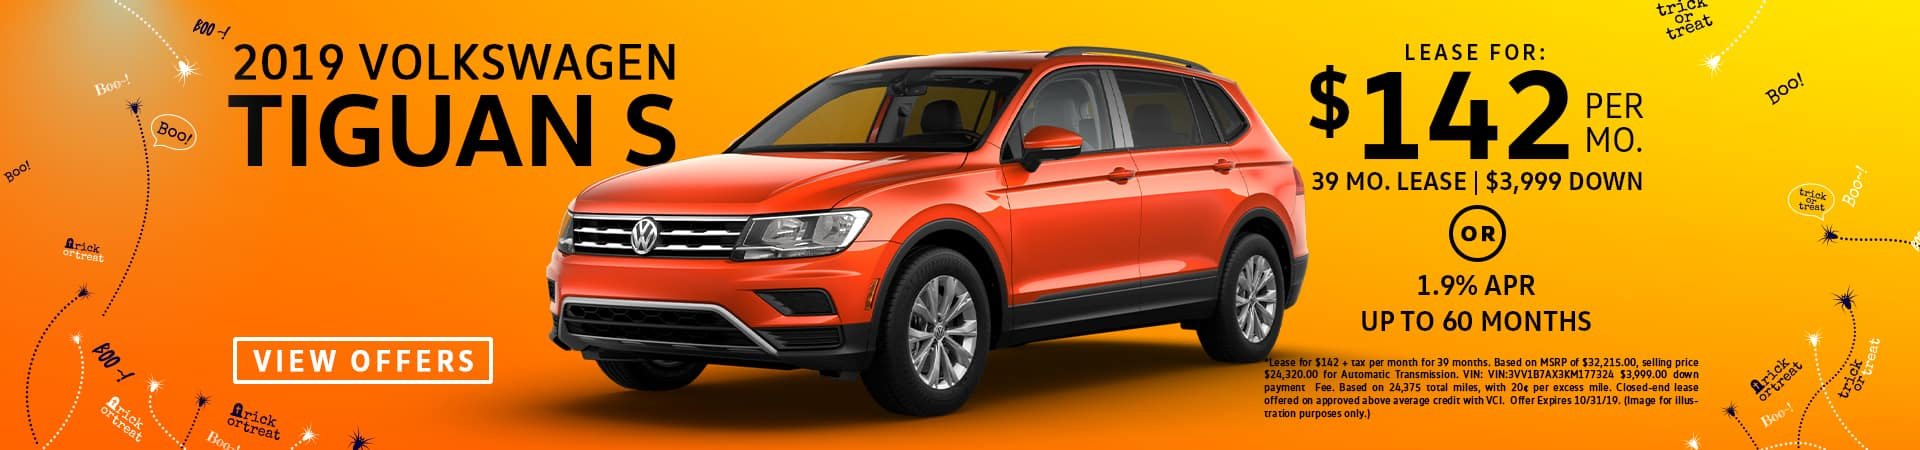 vw tiguan lease special for sale in glendale californica